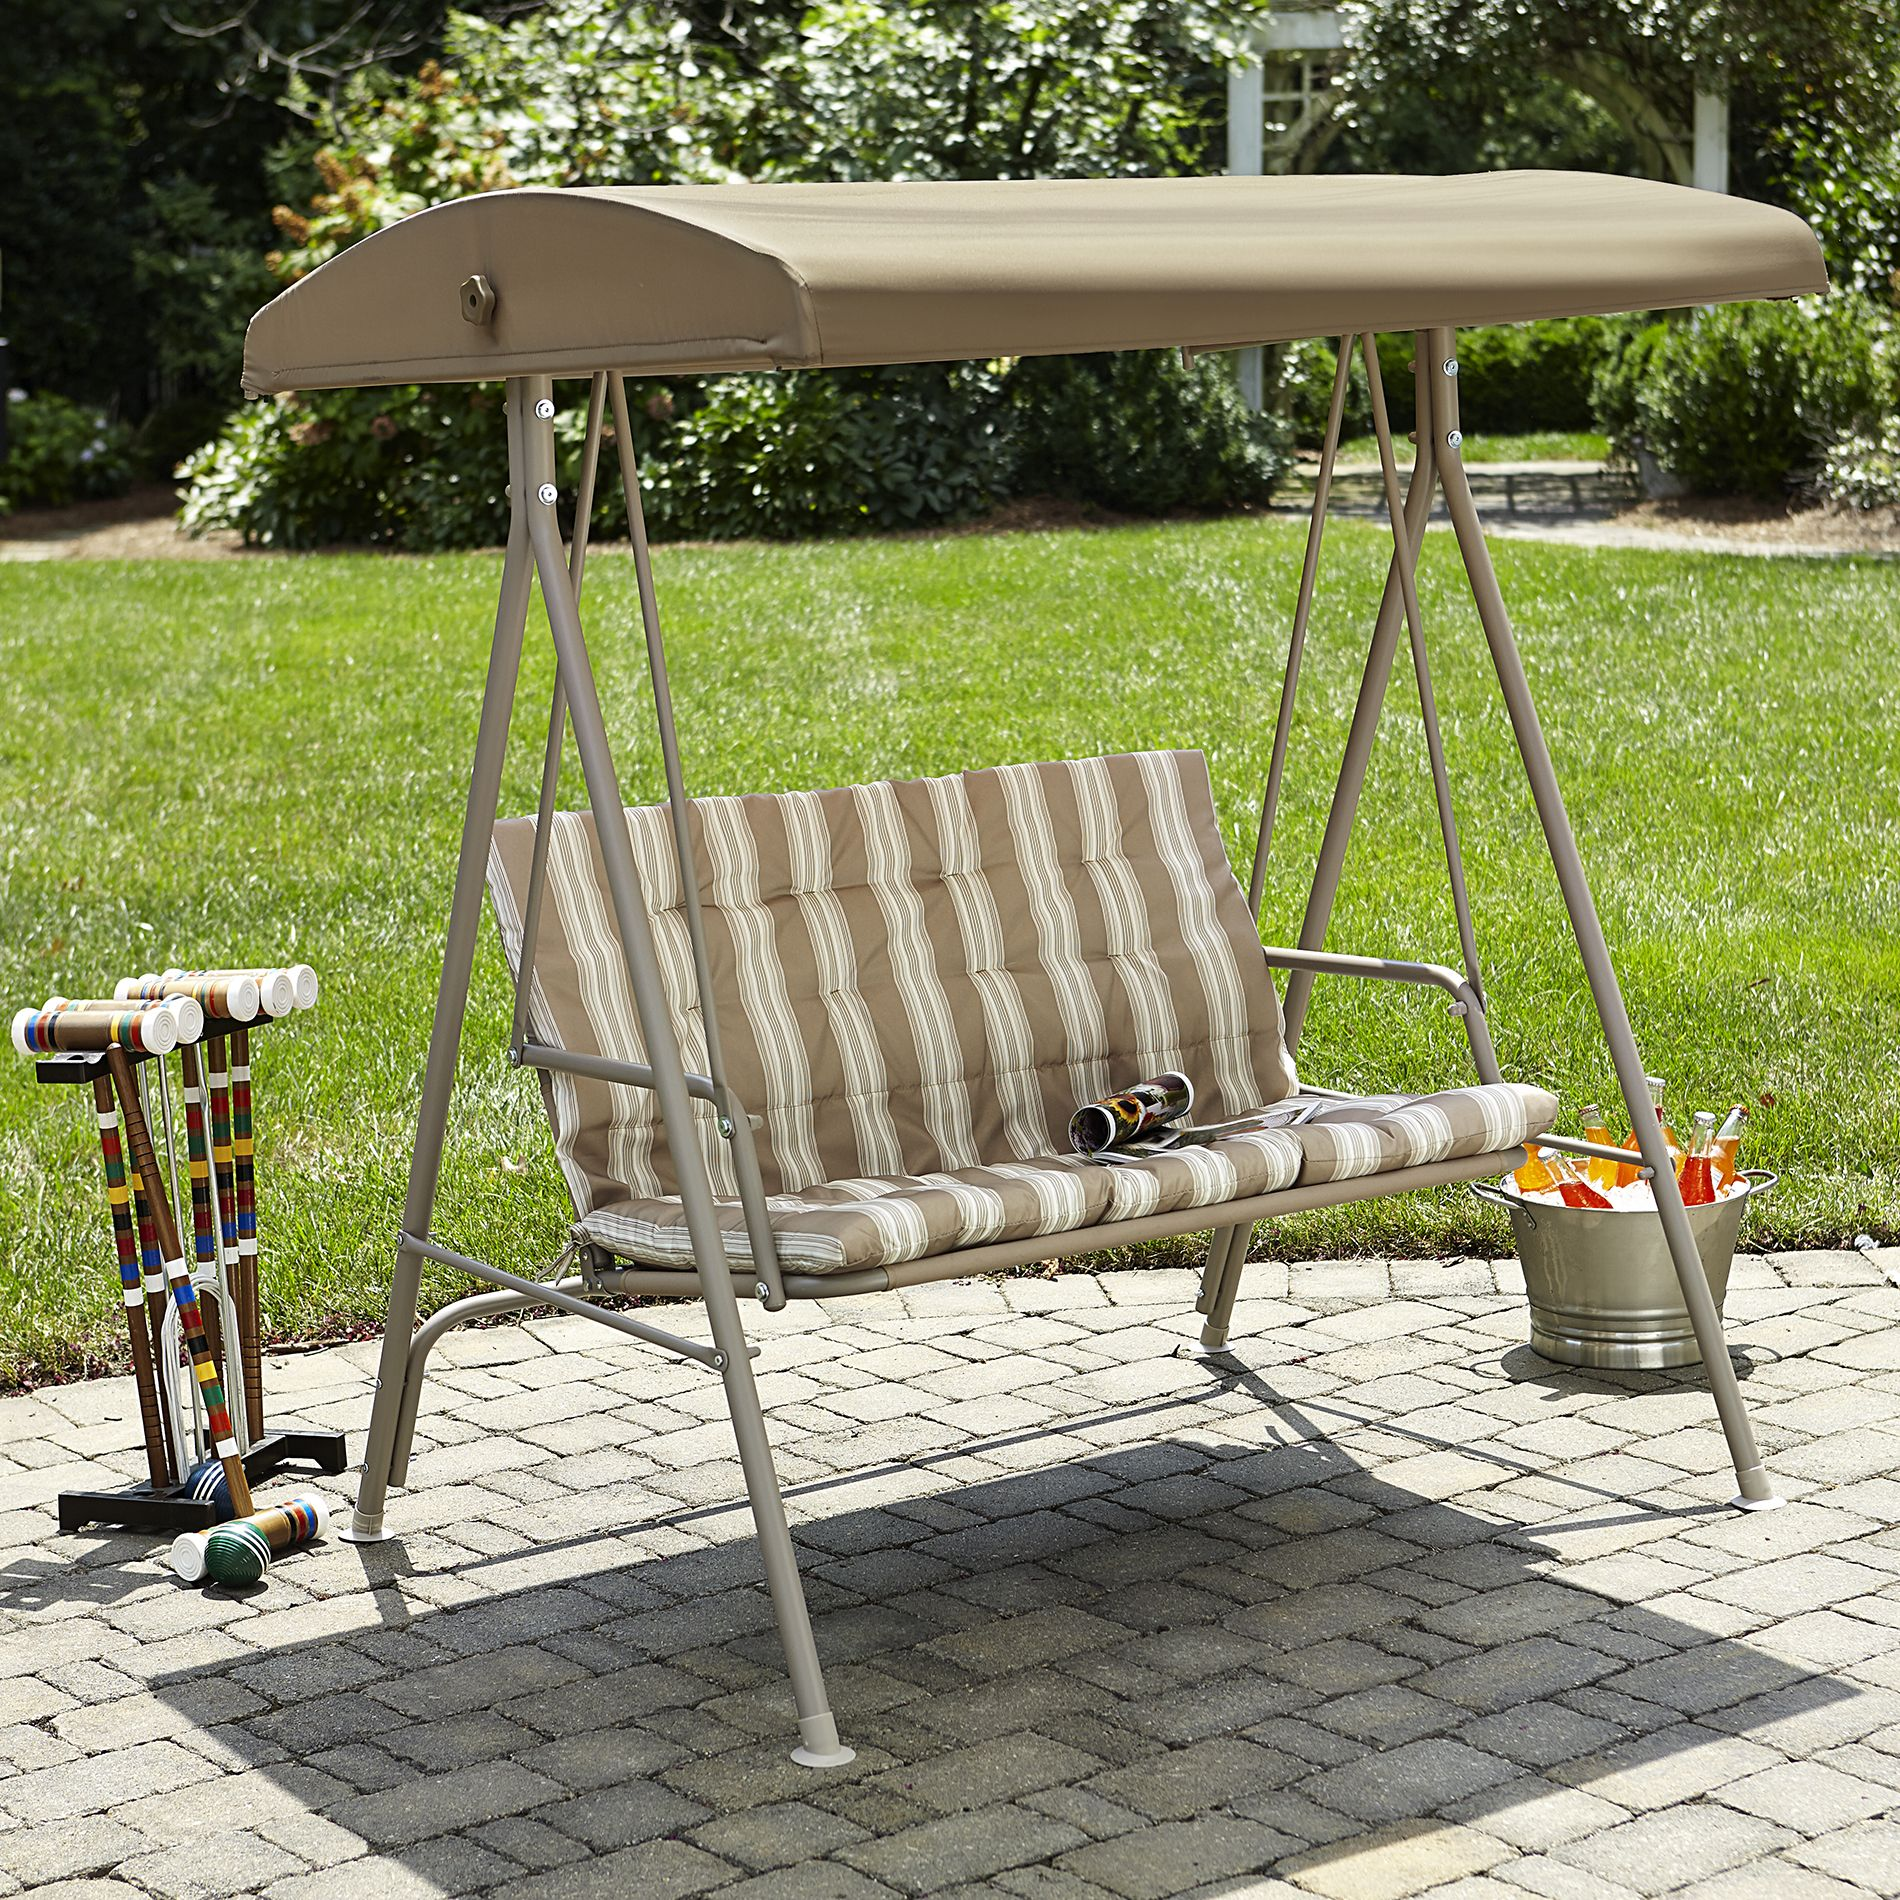 Rock To A Gentle Breeze With An Essential Garden Canopy 2 Seat Swing